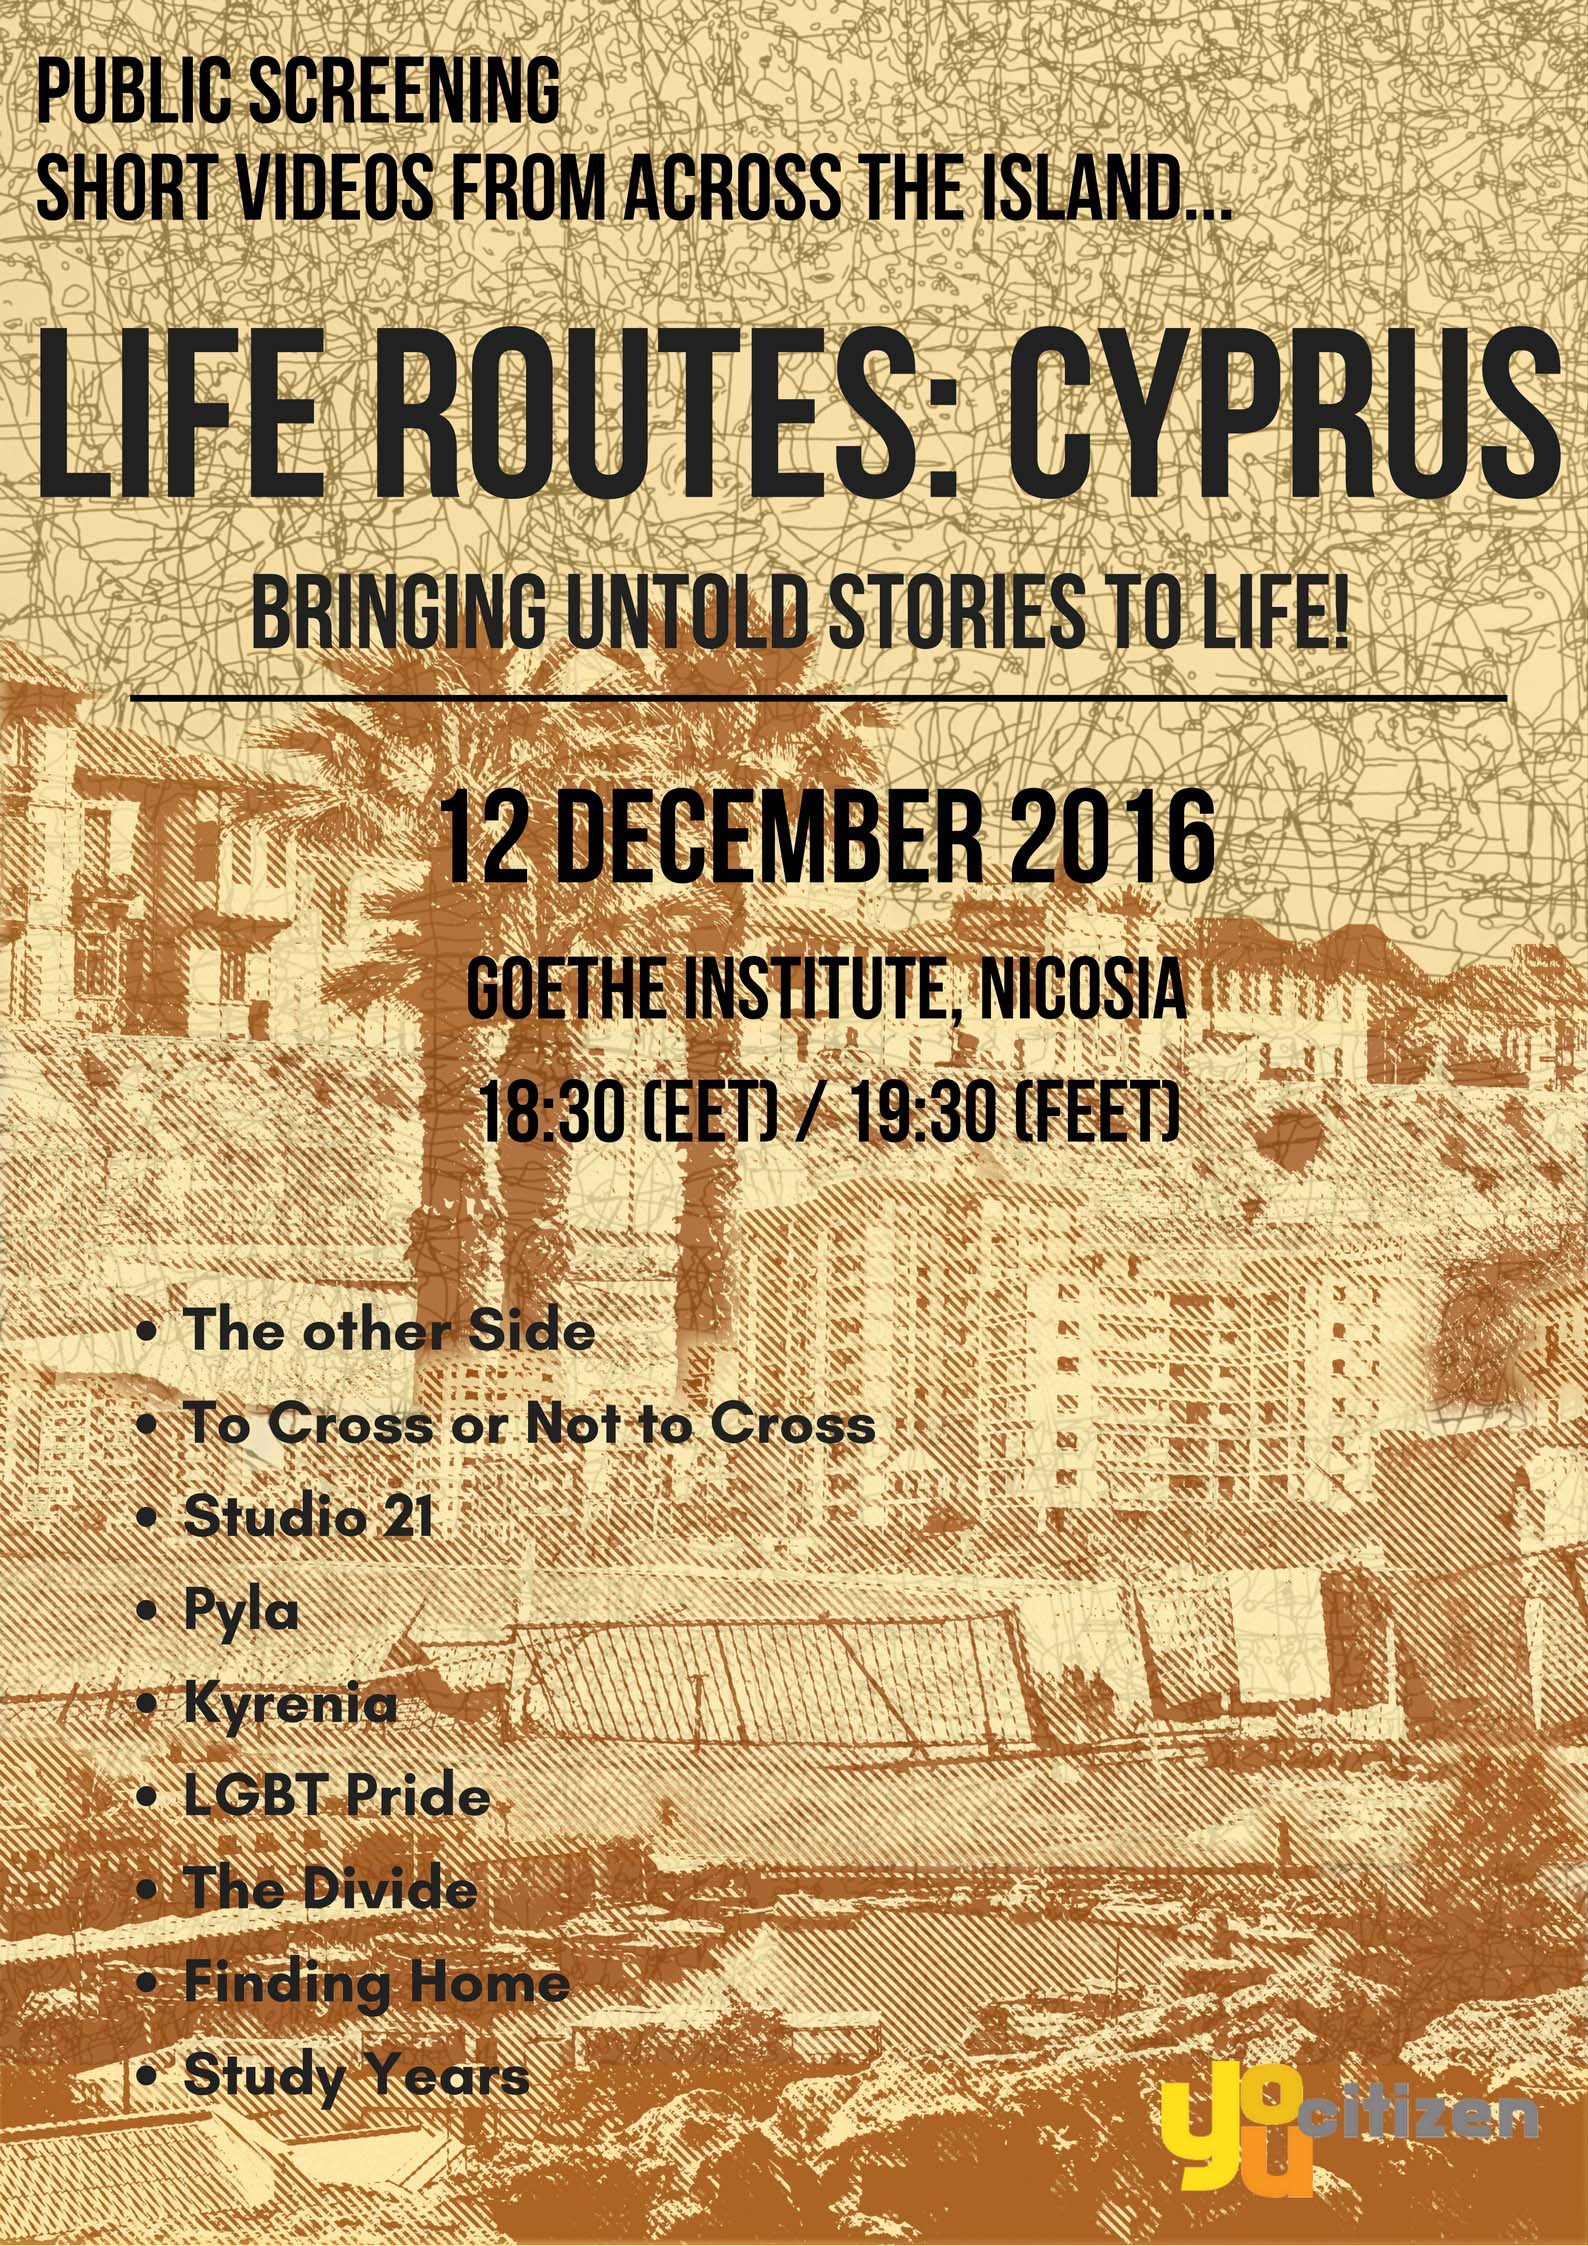 Life Routes Cyprus